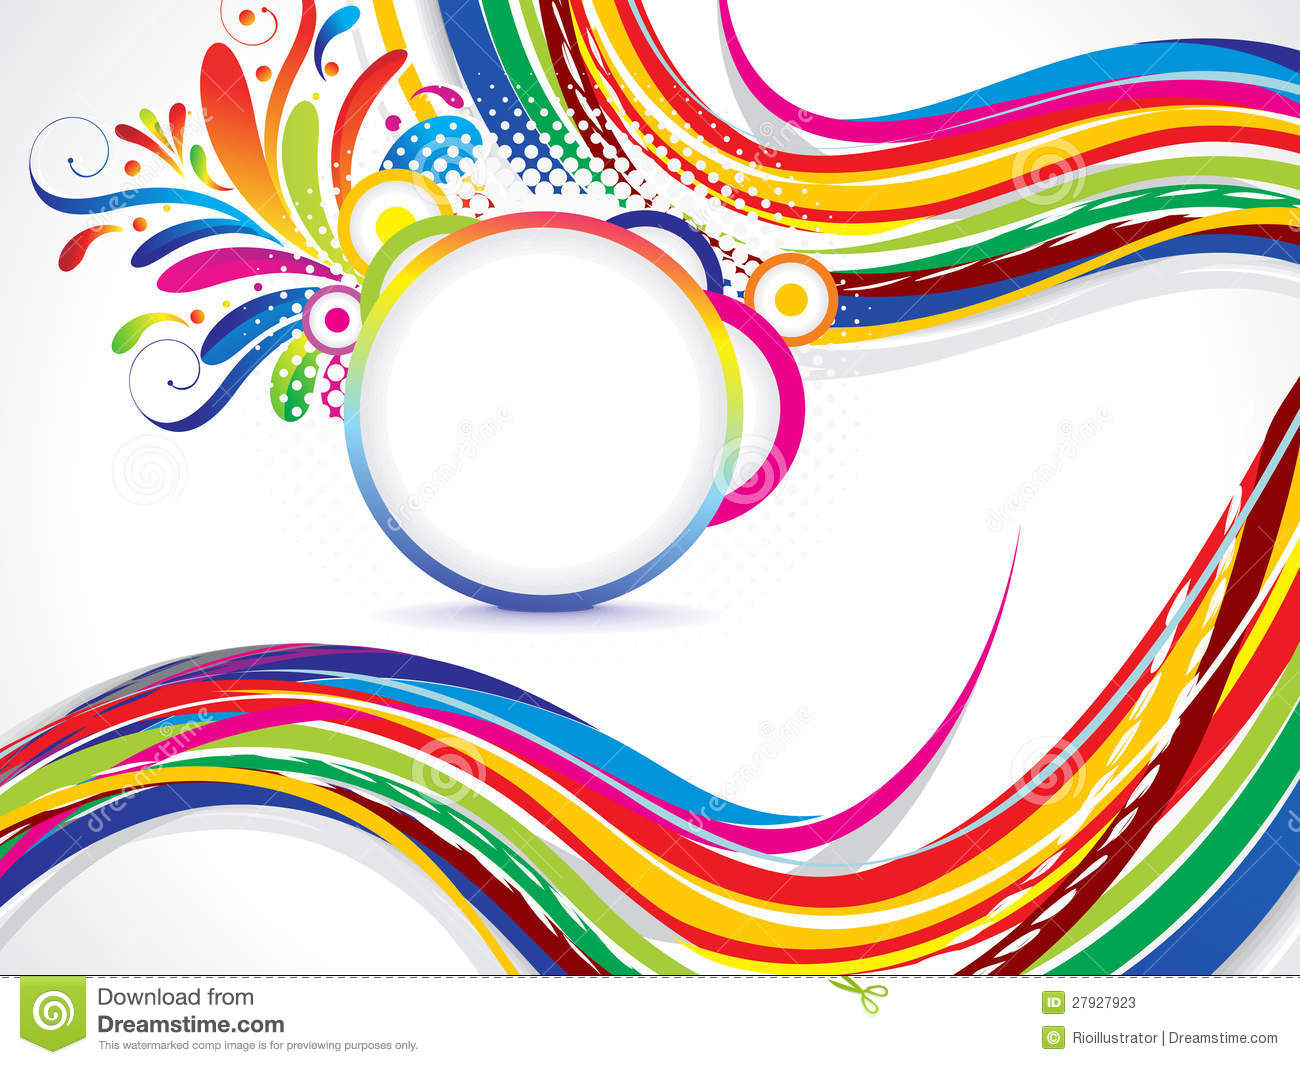 Abstract Volleyball On Colorful Wave Background: Abstract Colorful Wave Background With Floral Stock Vector